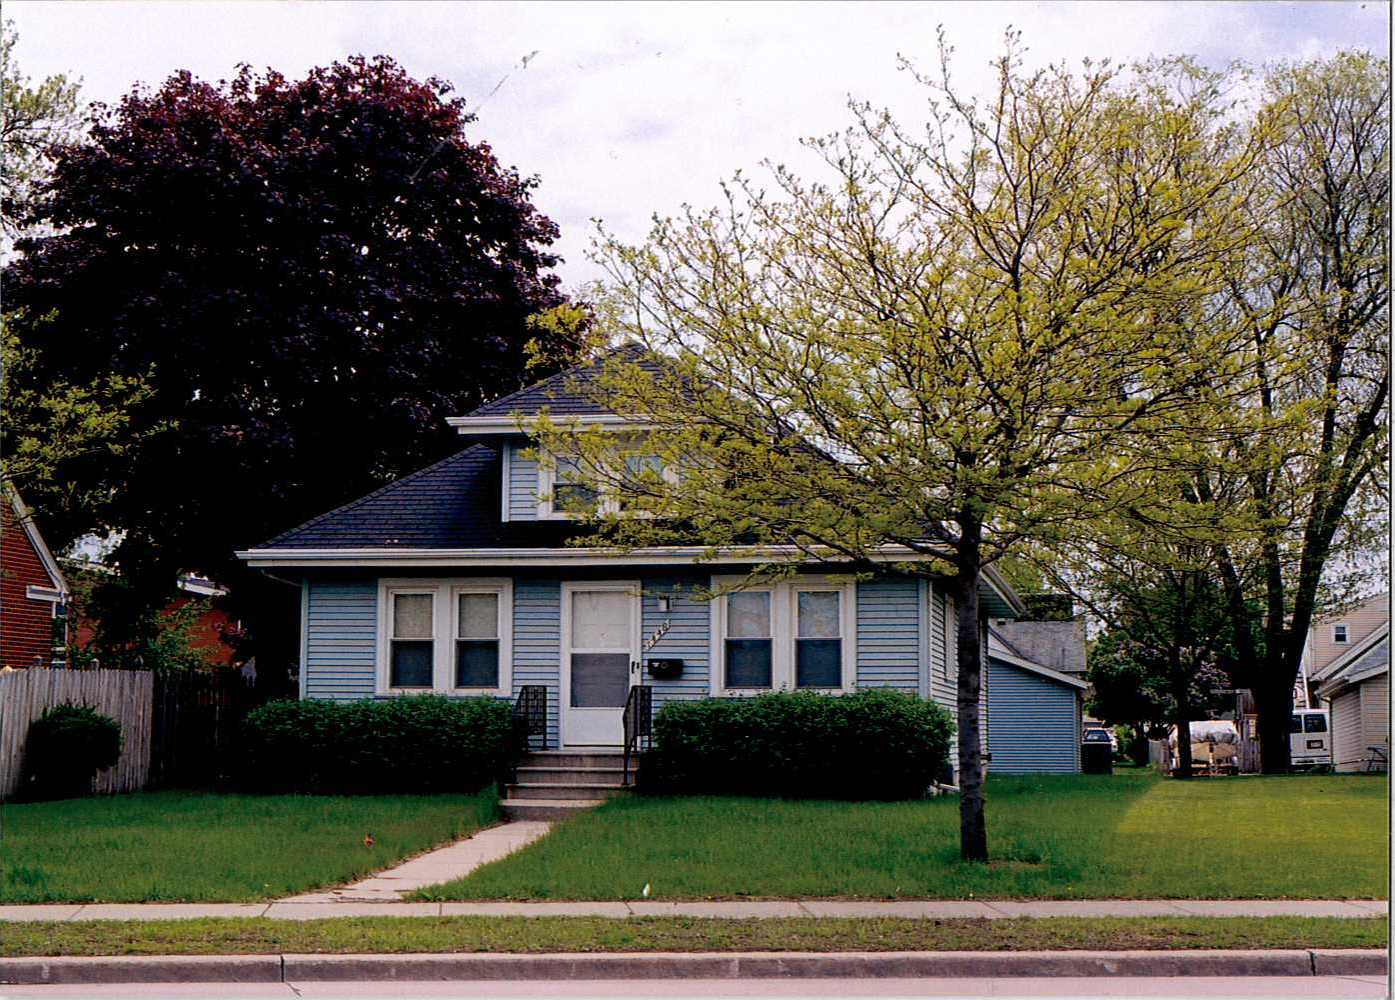 The residential house located at 1448 University Avenue.